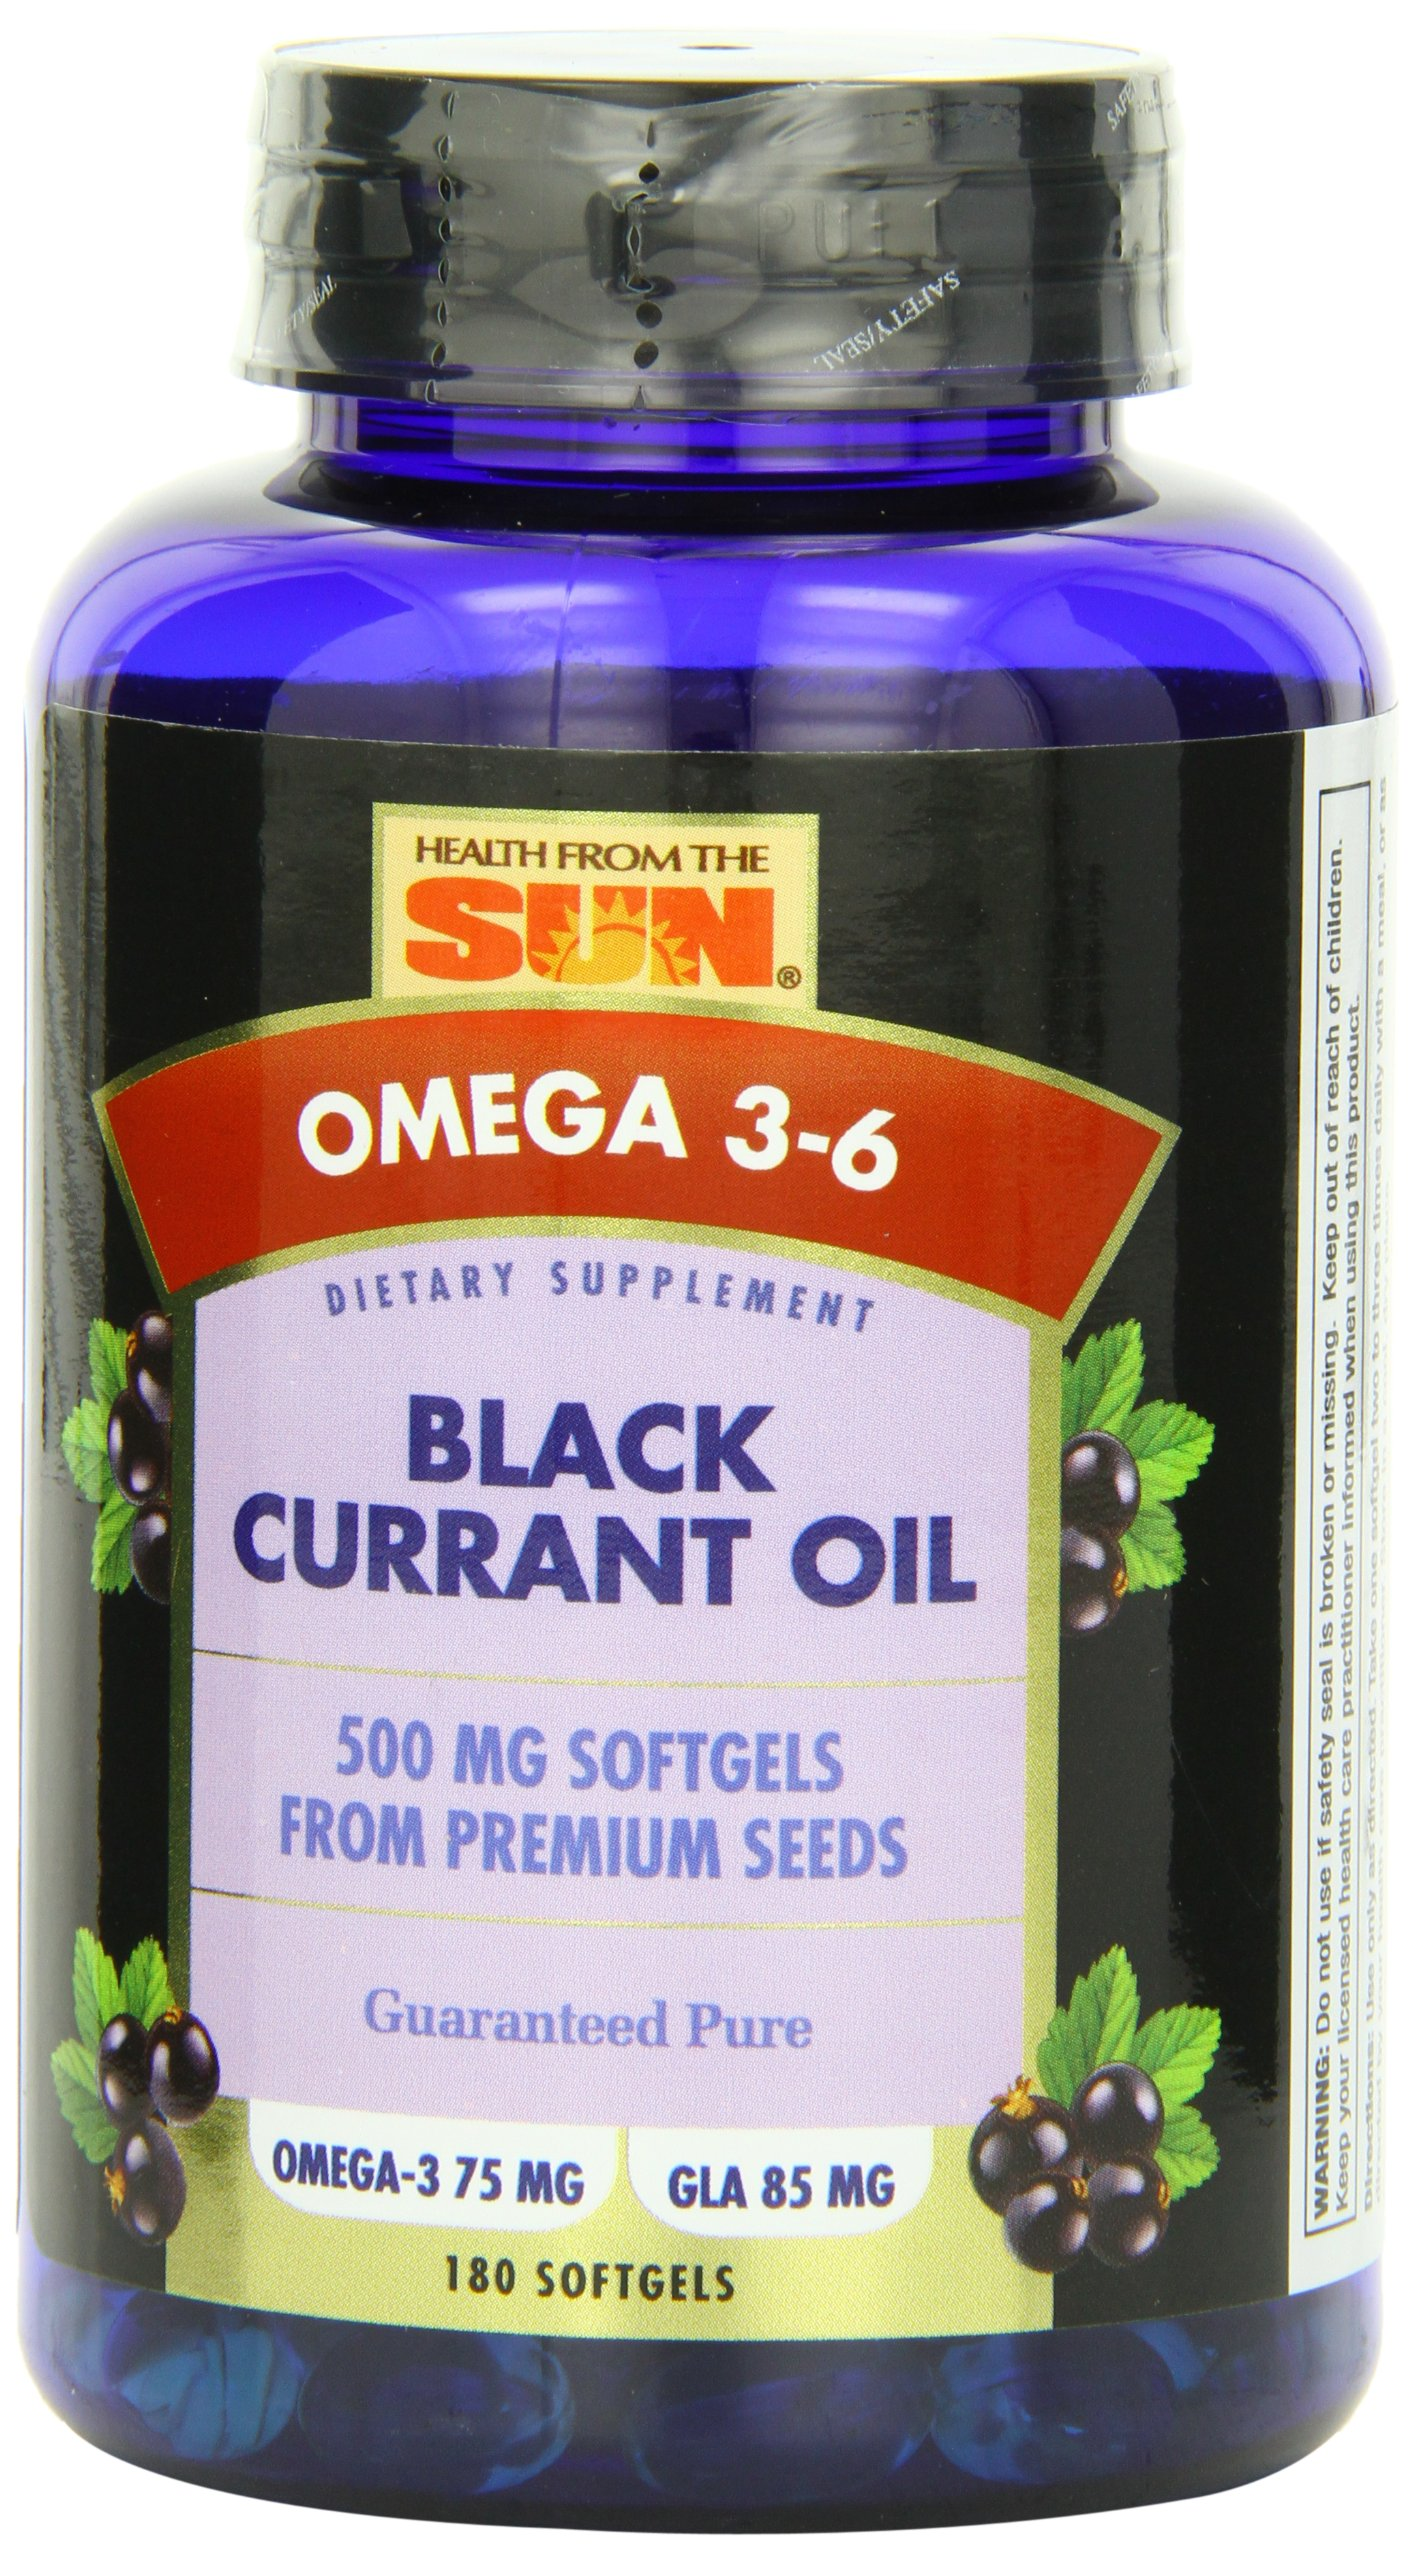 Health From The Sun Black Currant Oil Softgels, 500 mg, 180 Count